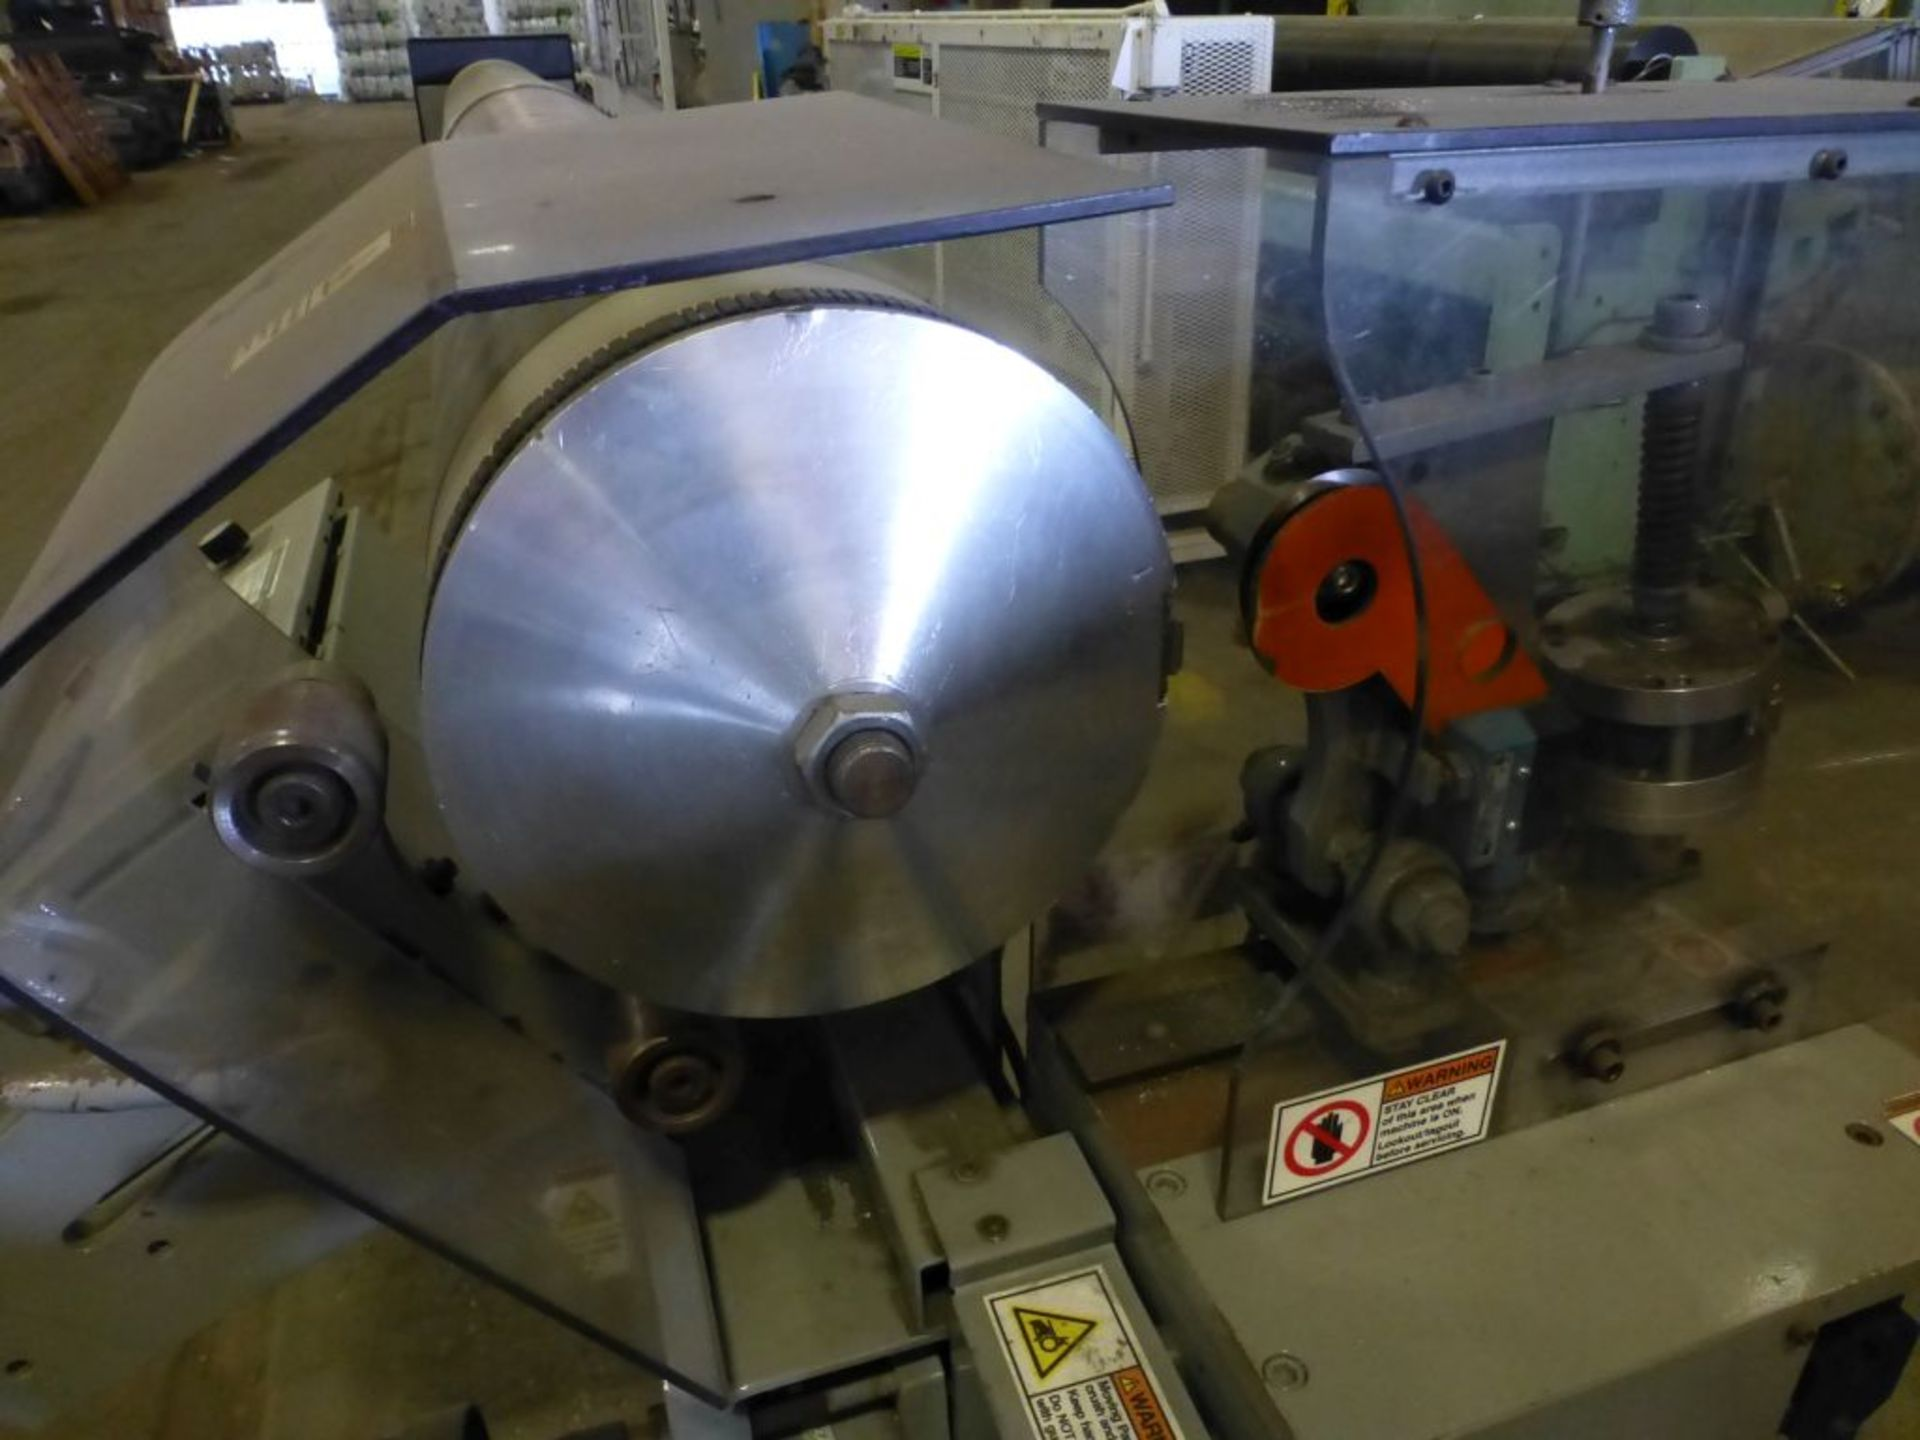 Appleton Automatic Core Cutter | Model No. A301; 2 HP; 460V; 3PH; Mfg: 2010 - Image 7 of 19